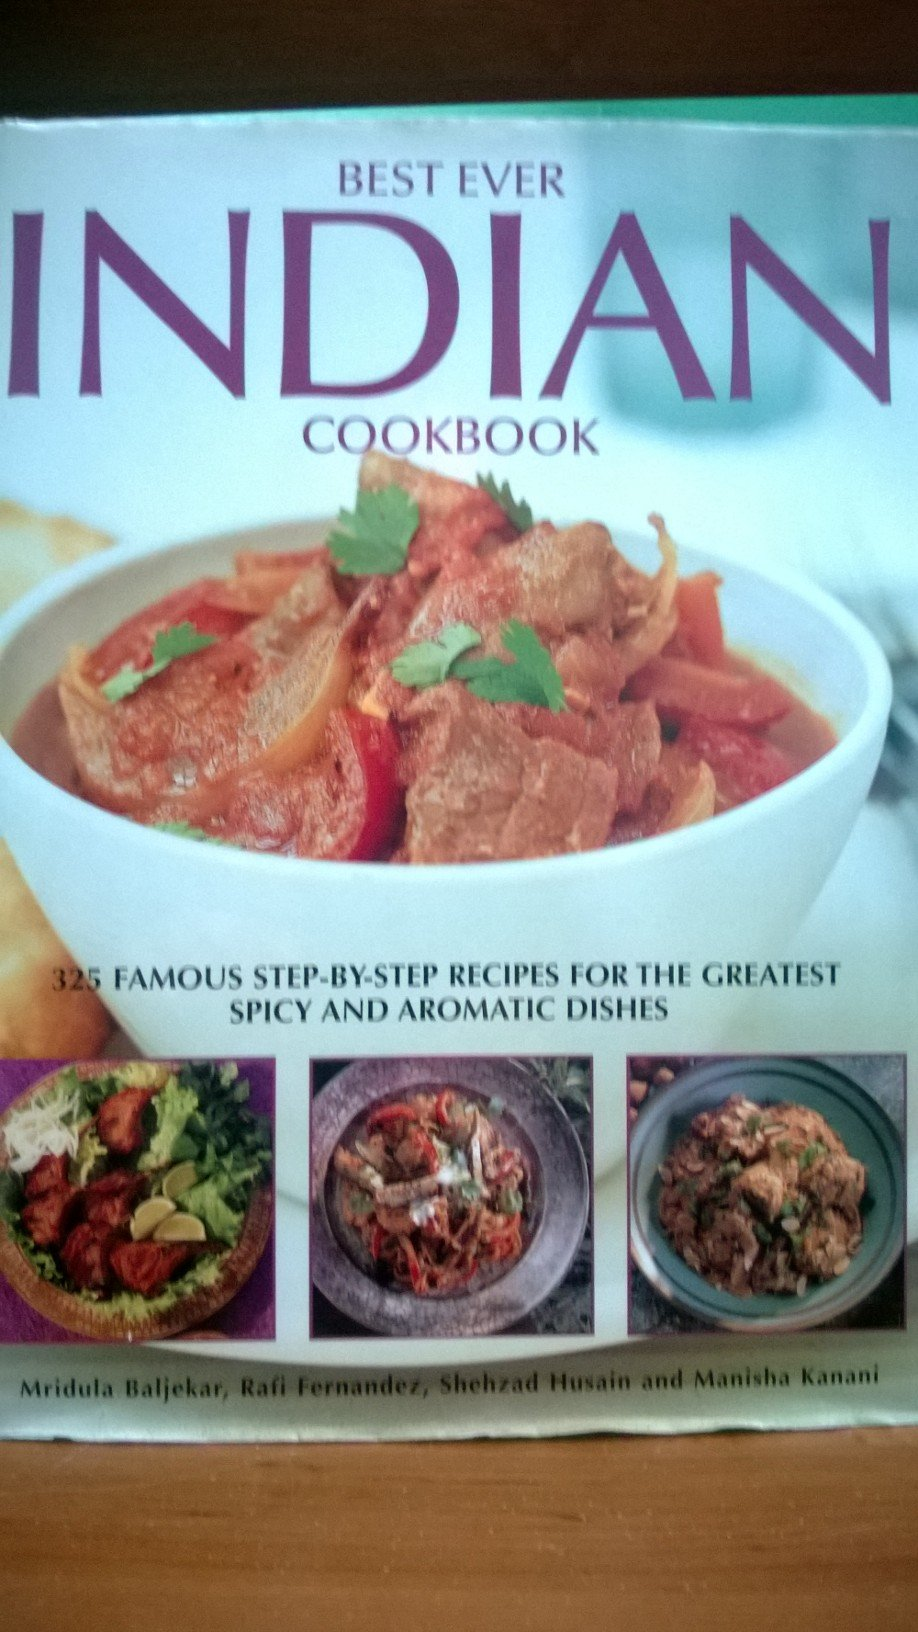 Best Ever Indian Cookbook, Mridula Baljekar; Rafi Fernandez; Shehzad Husain; Manisha Kanani